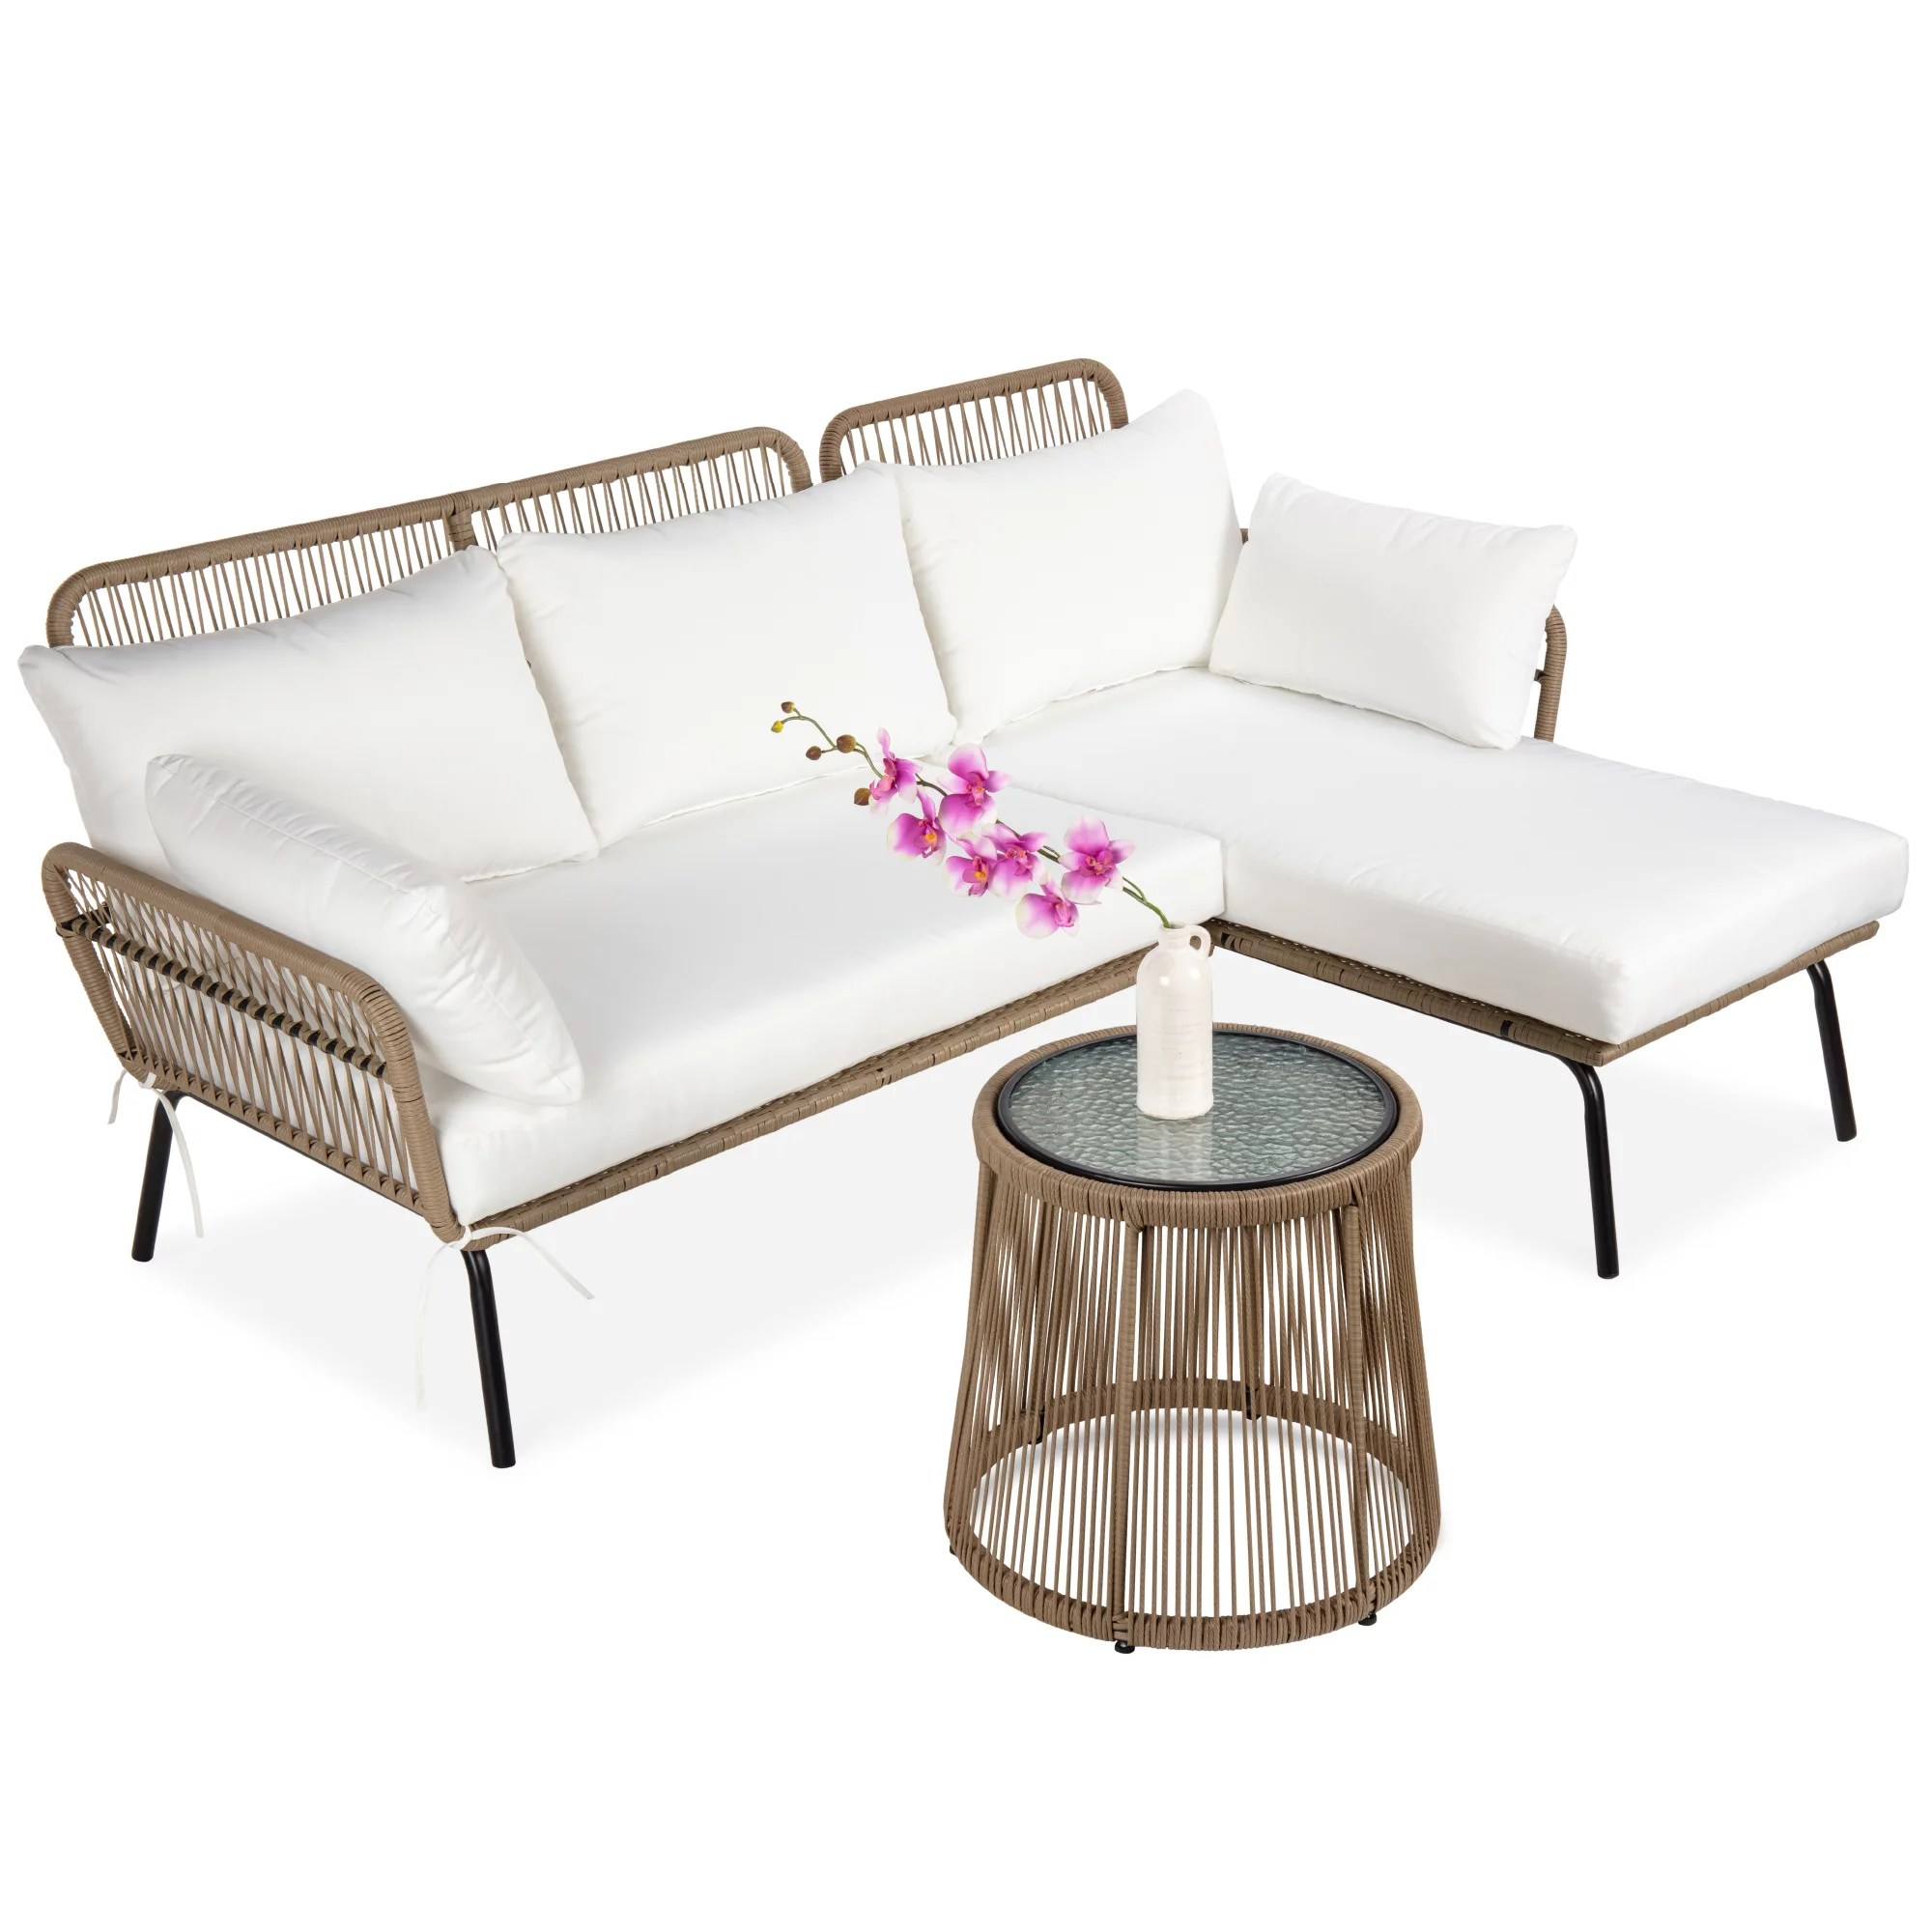 best choice products outdoor rope woven sectional patio furniture l shaped conversation set w cushions table white